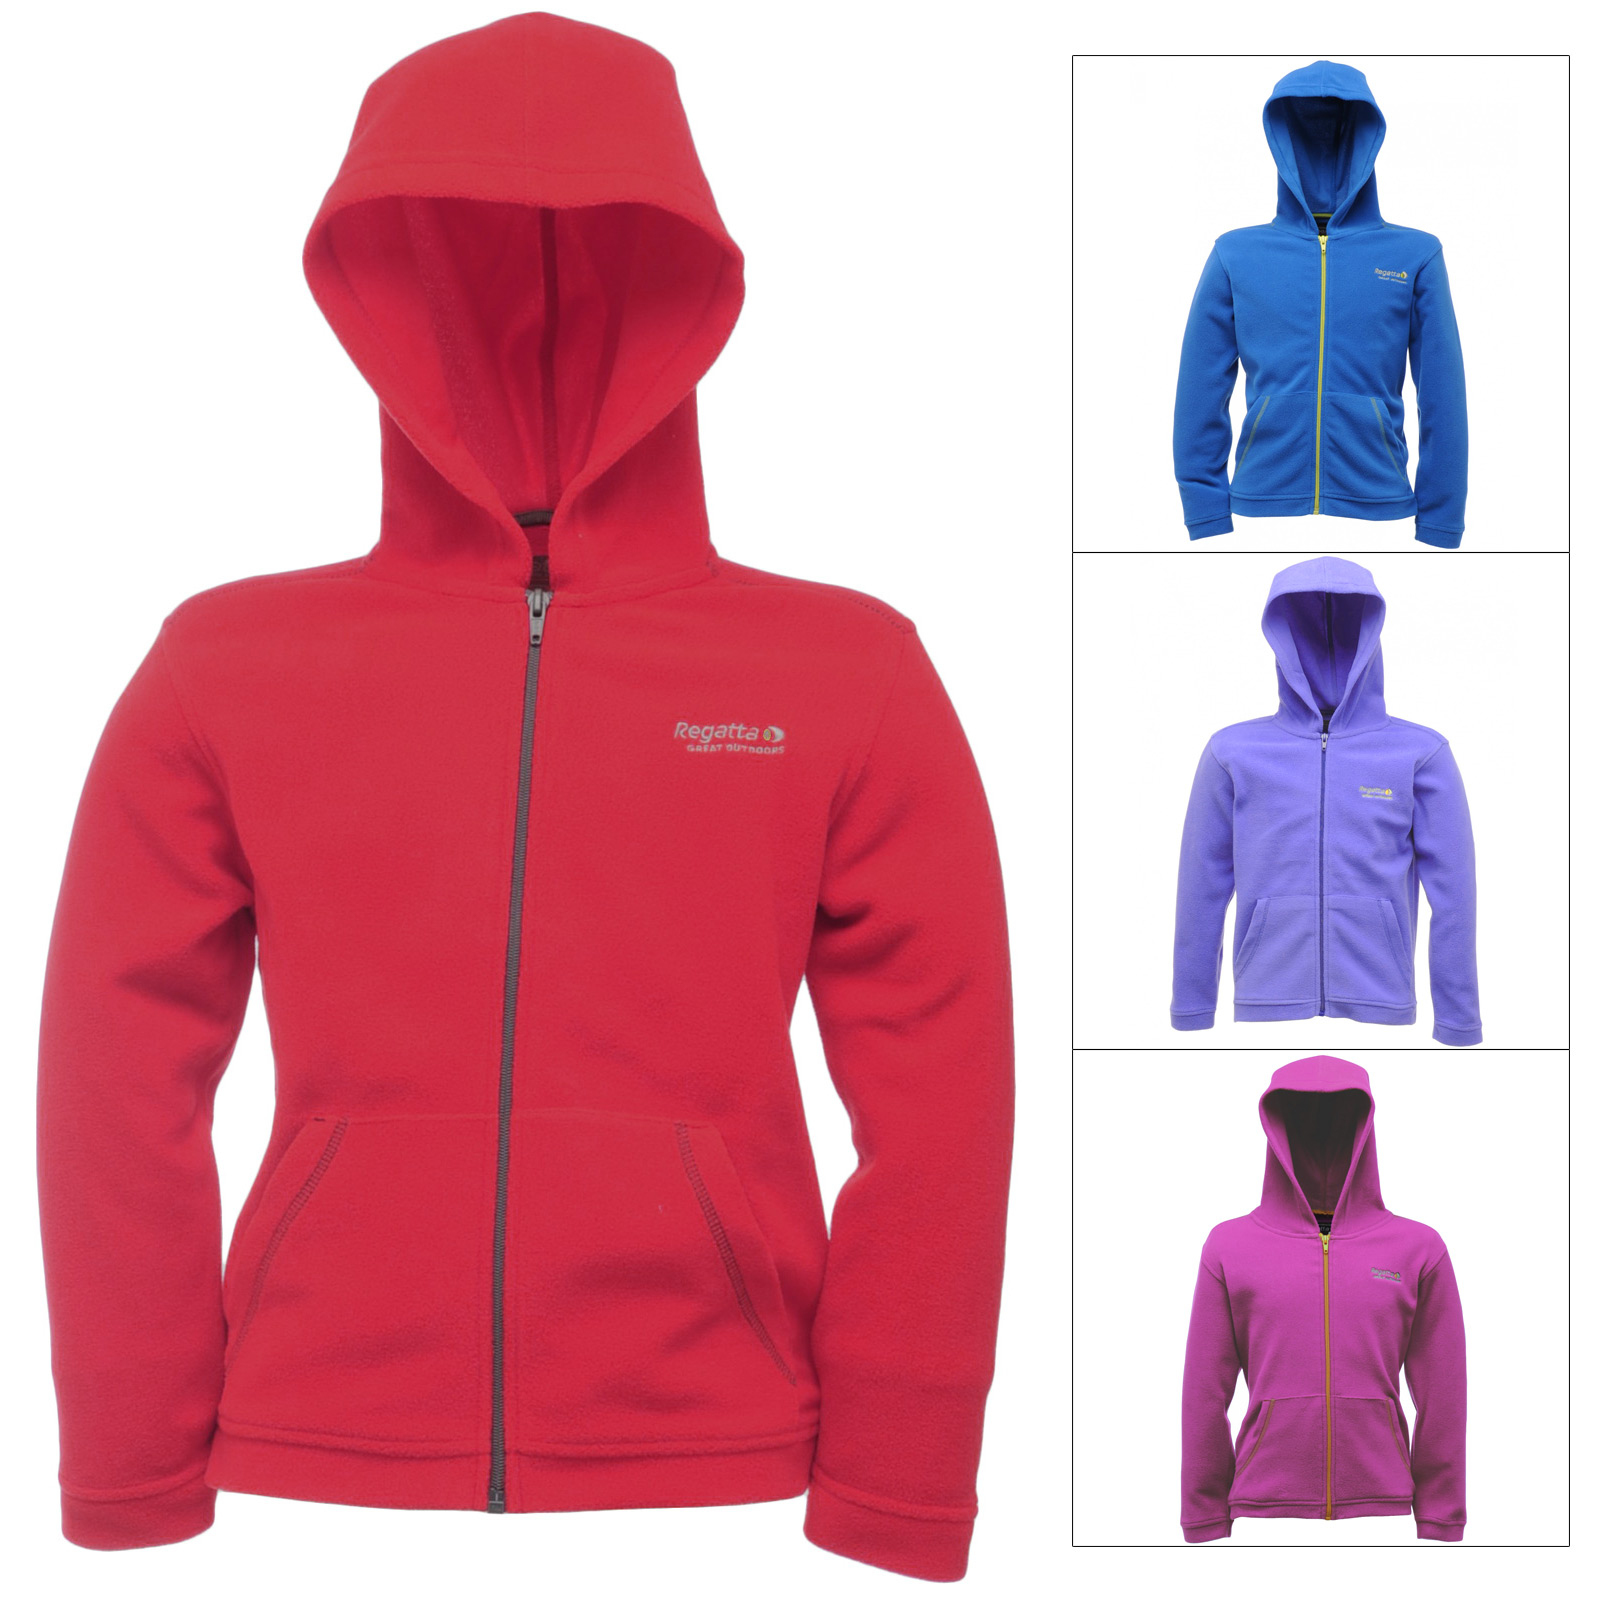 Regatta Childrens Chad Fleece Hooded Jacket Zip Up Top Outdoor Wear Kids Hoodie